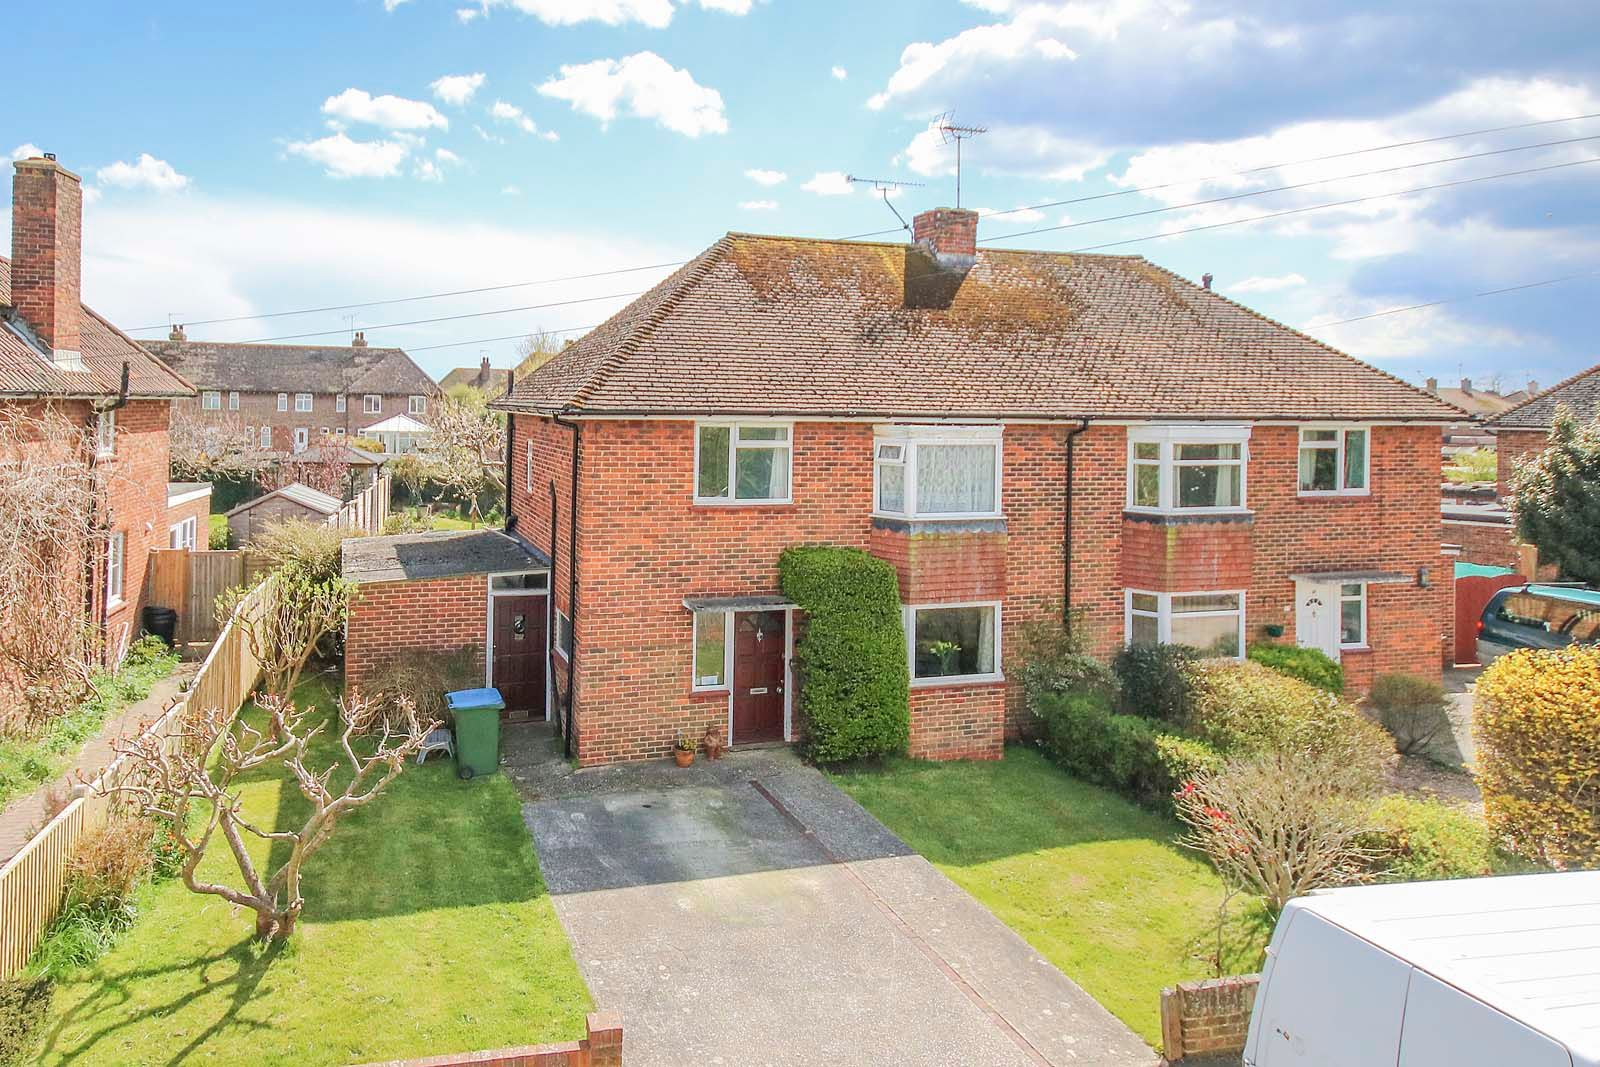 3 bed house for sale in Roundstone Crescent 1